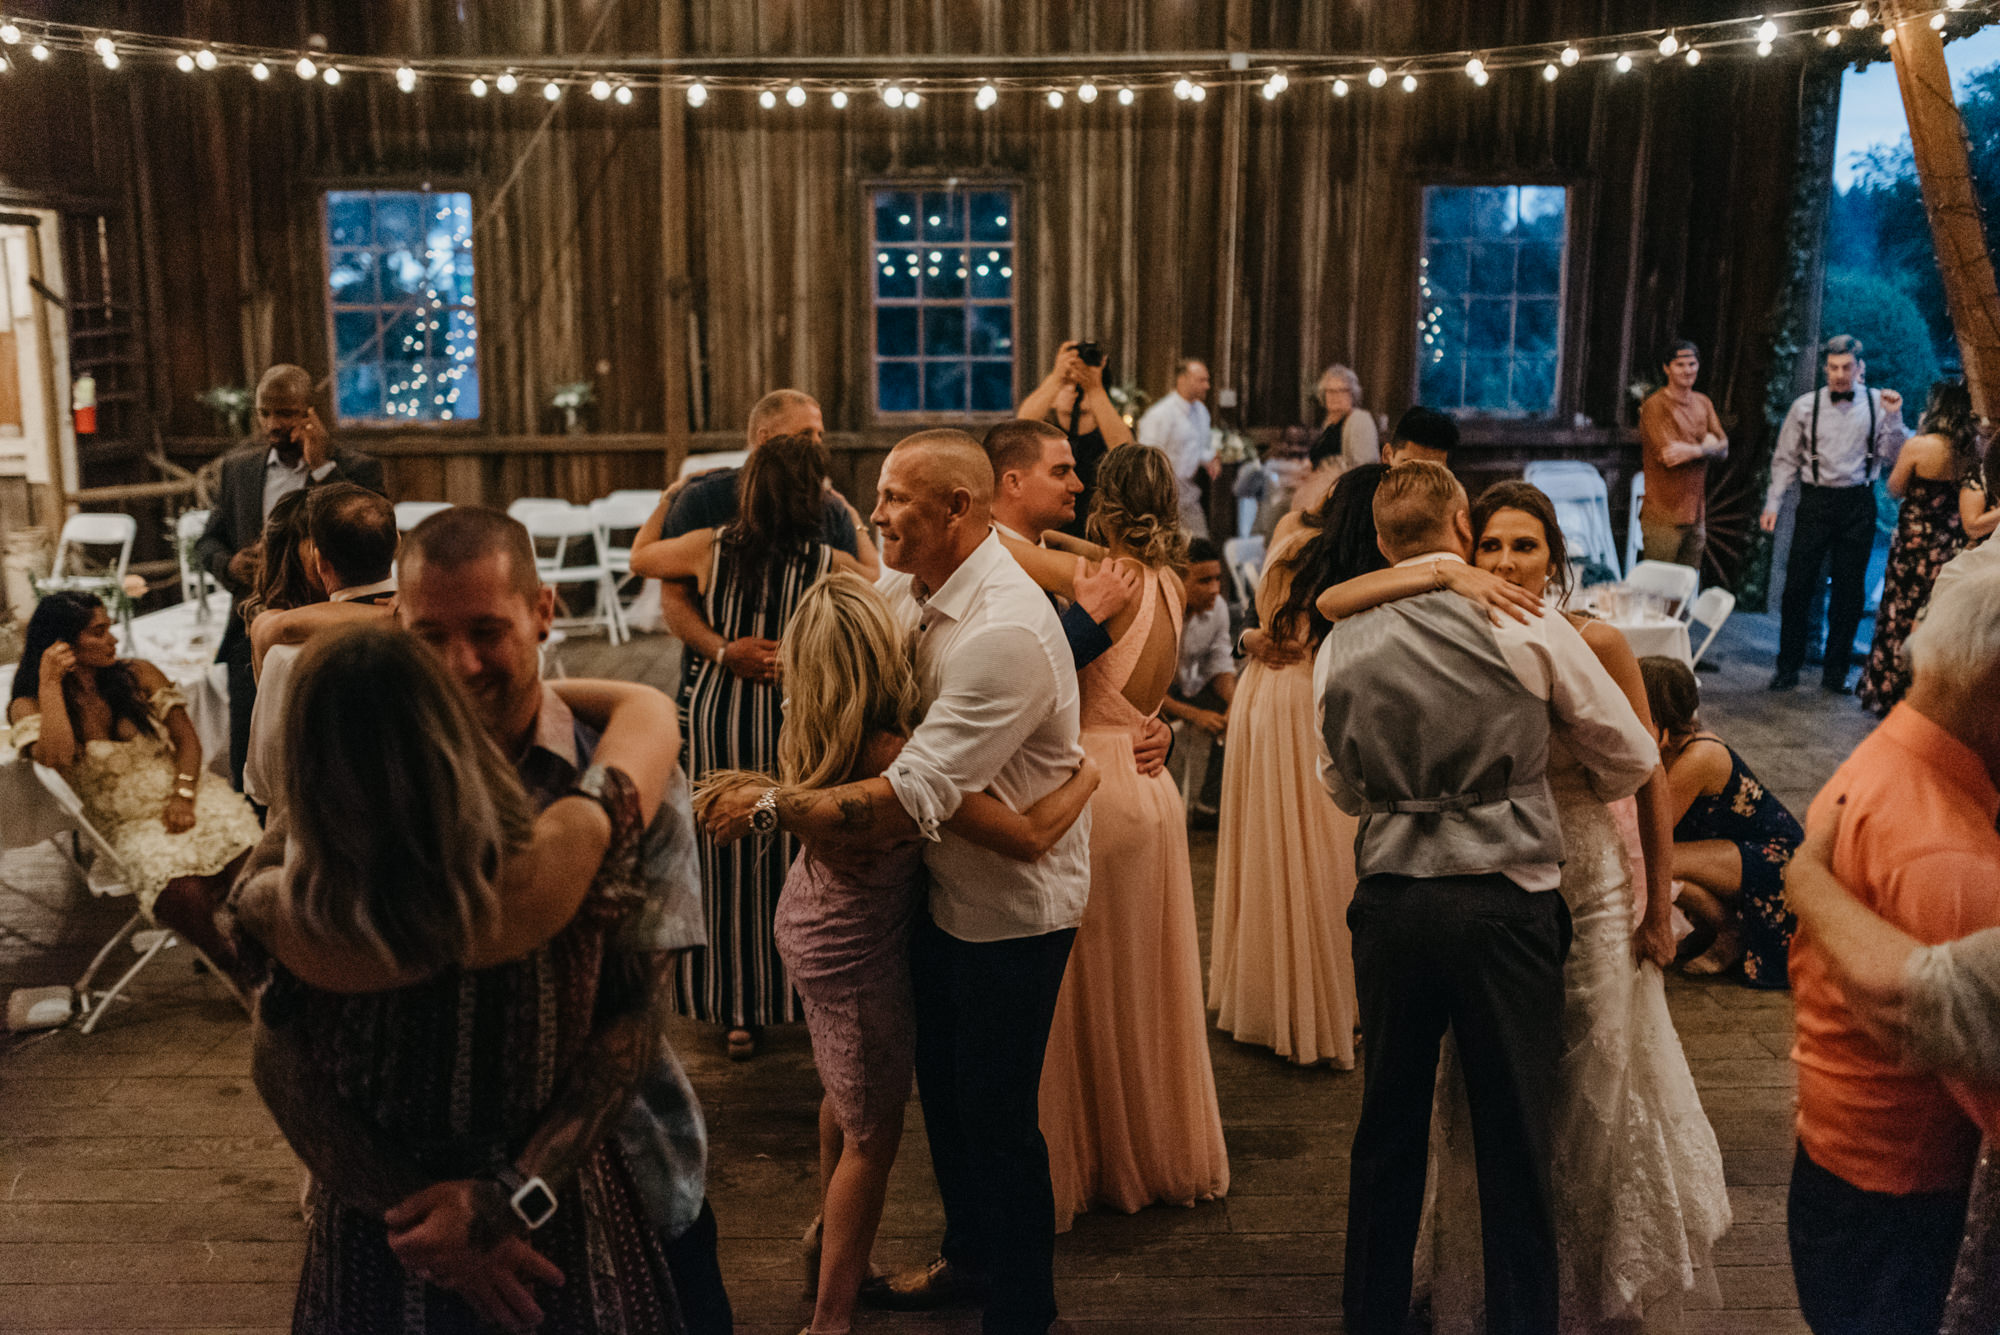 216-portland-northwest-wedding-bubble-exit-barn-string-lights.jpg